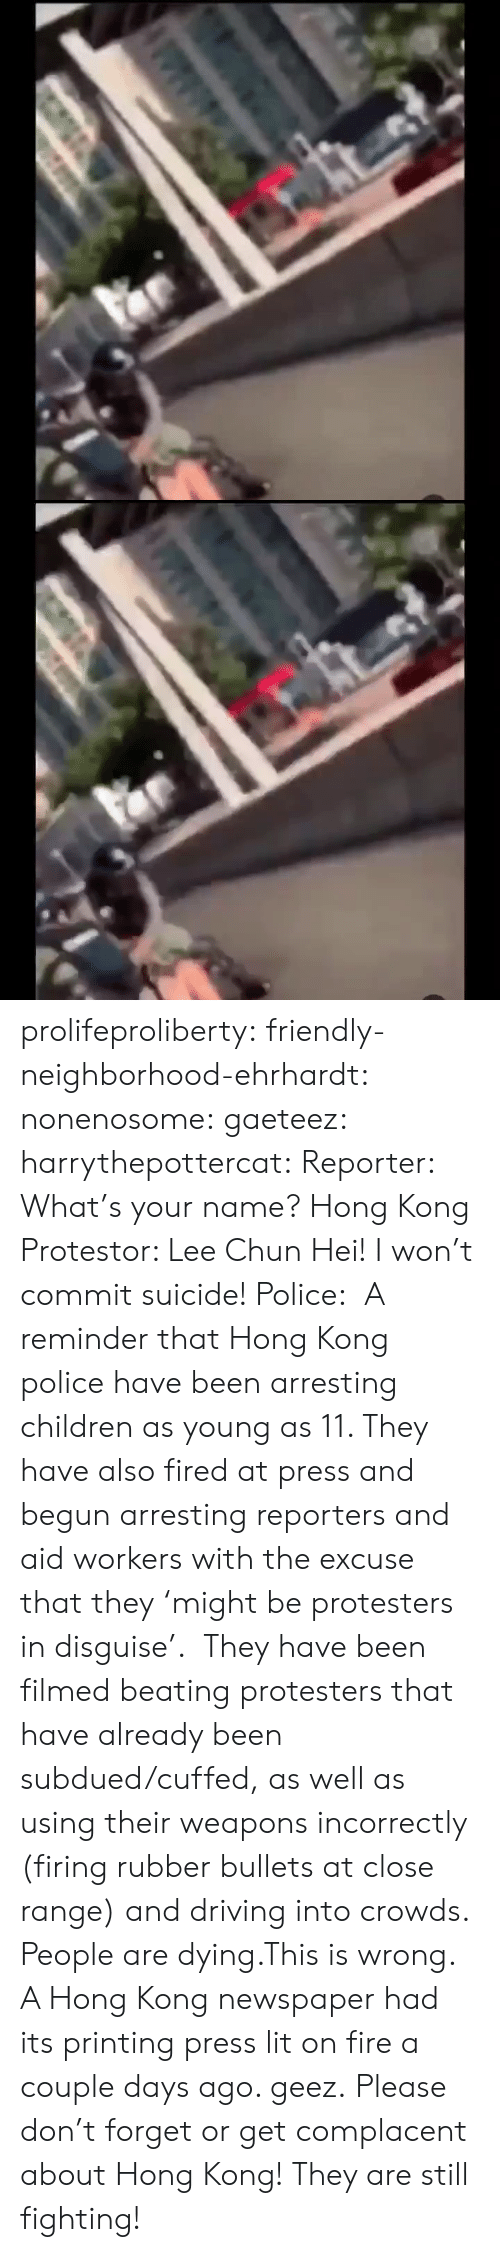 bbc: के.  ॥ल prolifeproliberty:  friendly-neighborhood-ehrhardt:  nonenosome:  gaeteez:   harrythepottercat:  Reporter: What's your name? Hong Kong Protestor: Lee Chun Hei! I won't commit suicide! Police:    A reminder that Hong Kong police have been arresting children as young as 11. They have also fired at press and begun arresting reporters and aid workers with the excuse that they 'might be protesters in disguise'.  They have been filmed beating protesters that have already been subdued/cuffed, as well as using their weapons incorrectly (firing rubber bullets at close range) and driving into crowds.  People are dying.This is wrong.    A Hong Kong newspaper had its printing press lit on fire a couple days ago.   geez.   Please don't forget or get complacent about Hong Kong! They are still fighting!